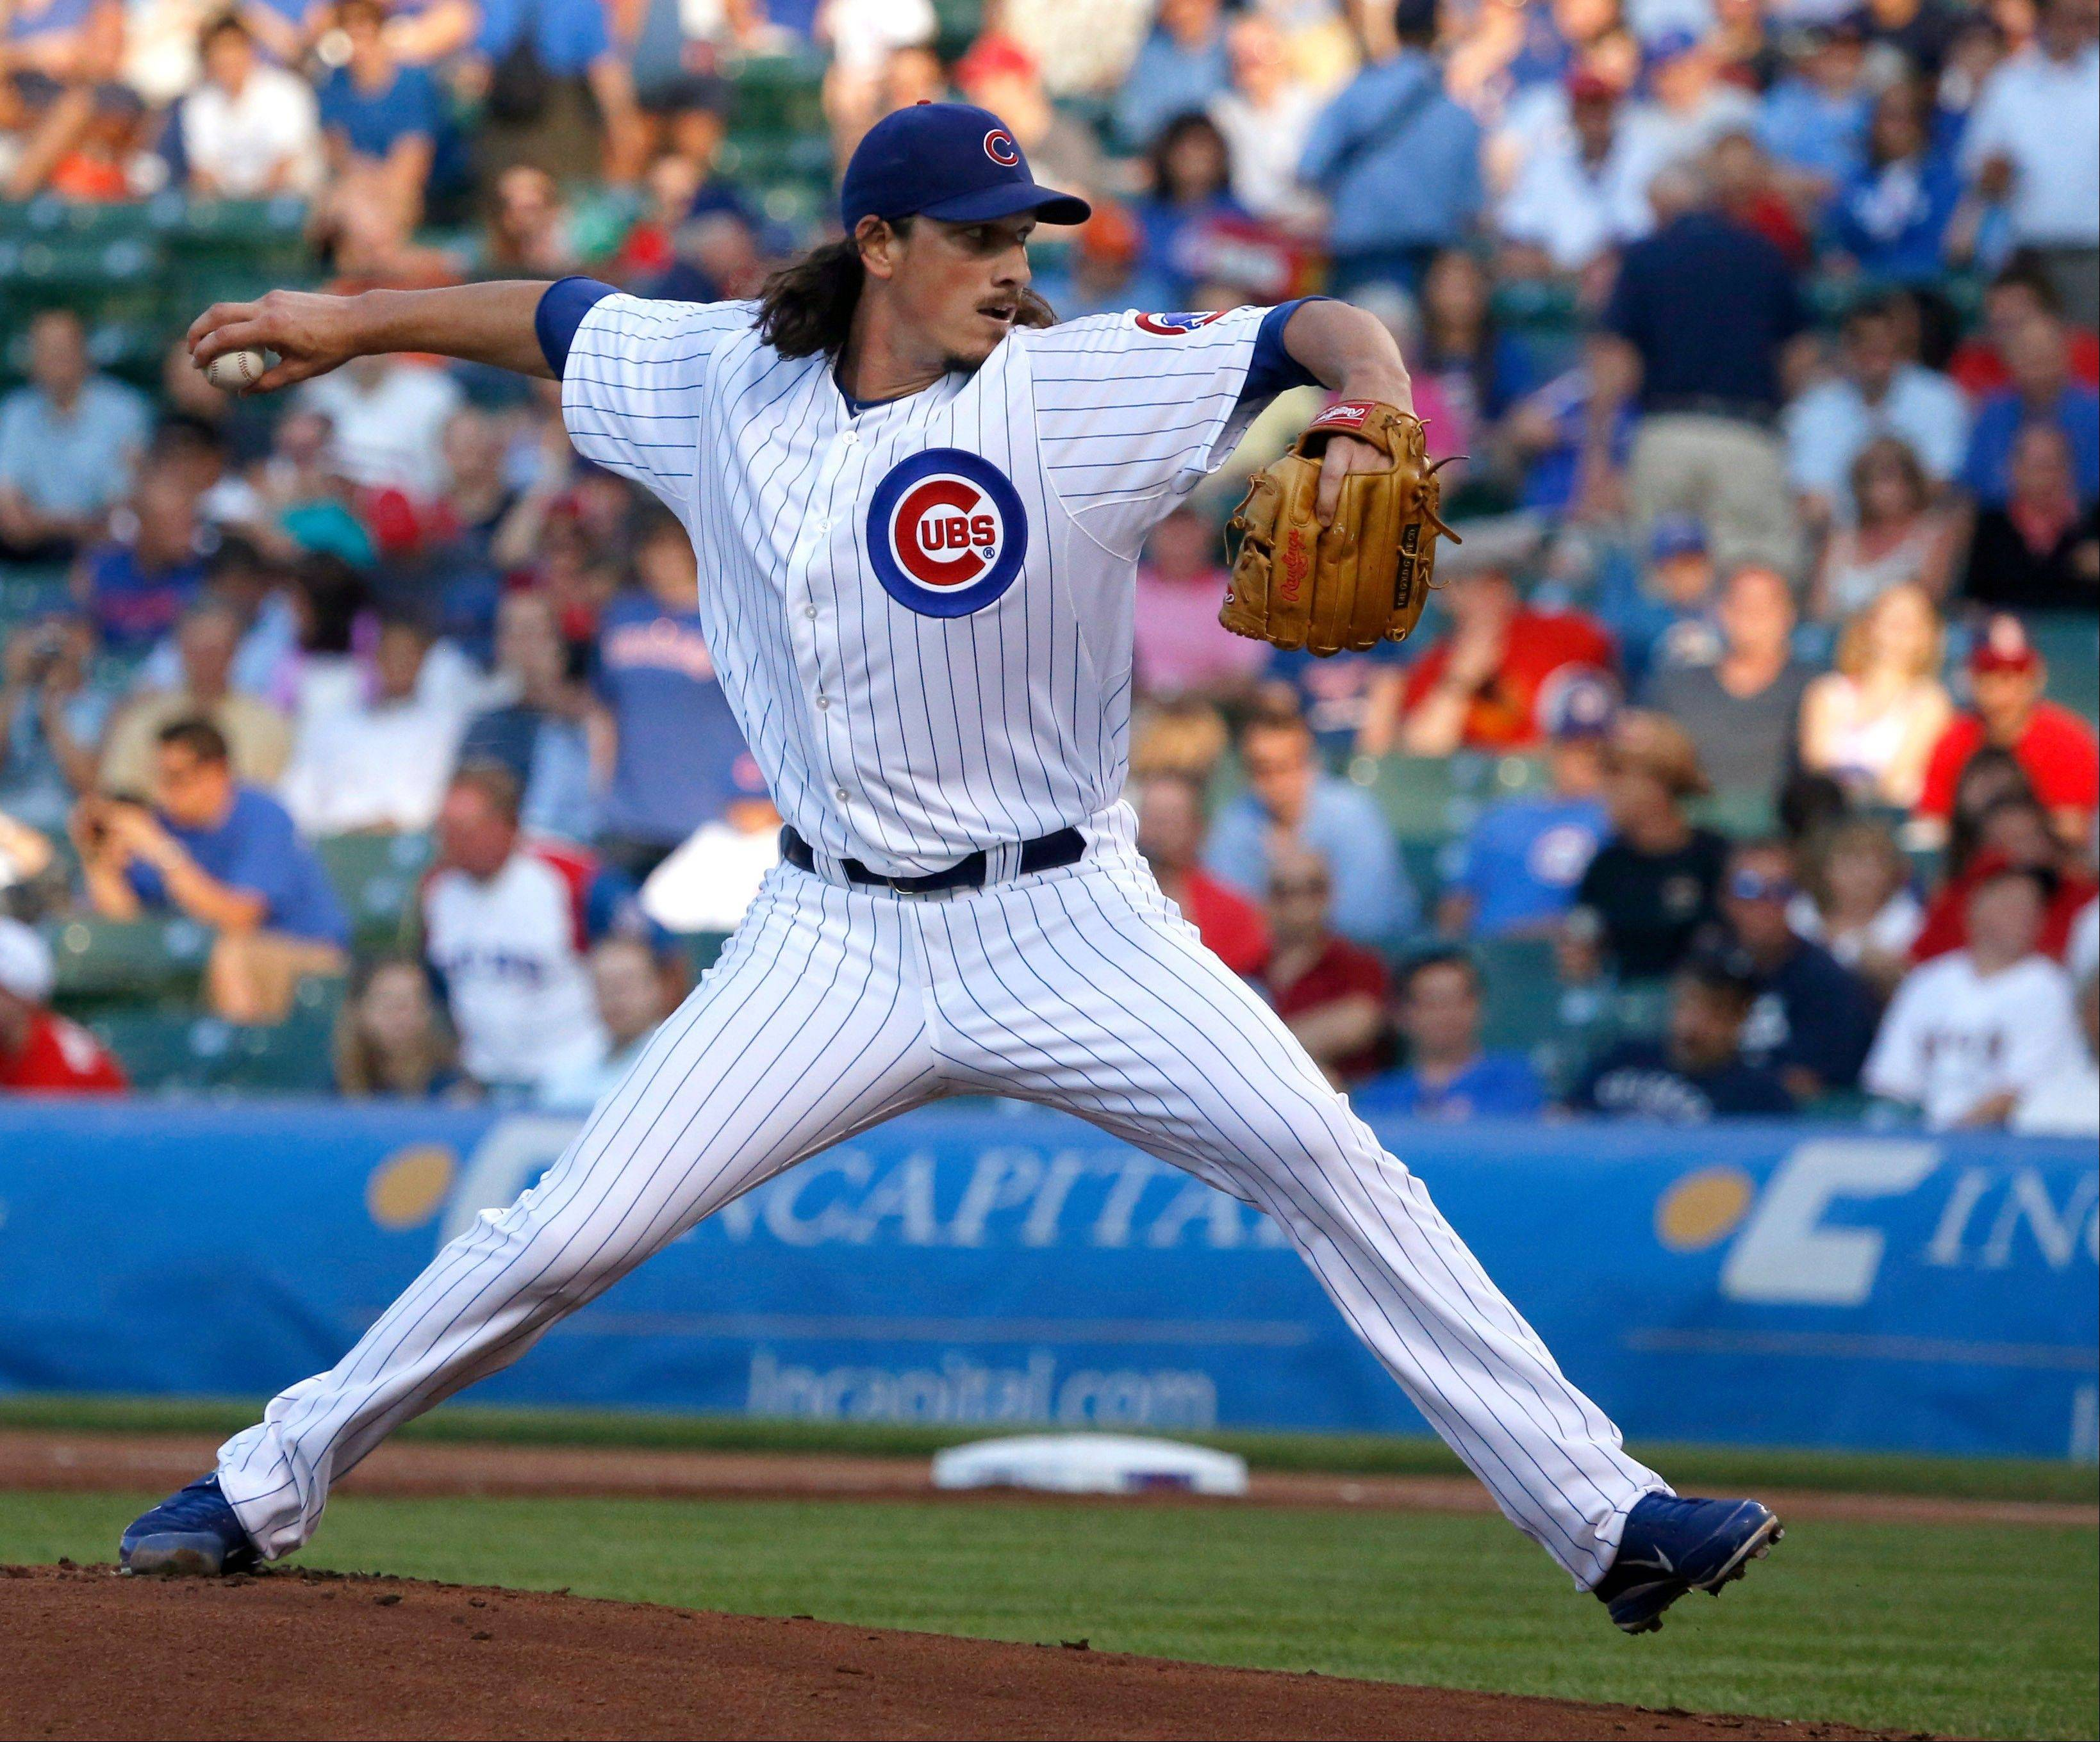 Cubs starting pitcher Jeff Samardzija delivers during the first inning of an interleague baseball game against the Los Angeles Angels on Wednesday, July 10, 2013, in Chicago.